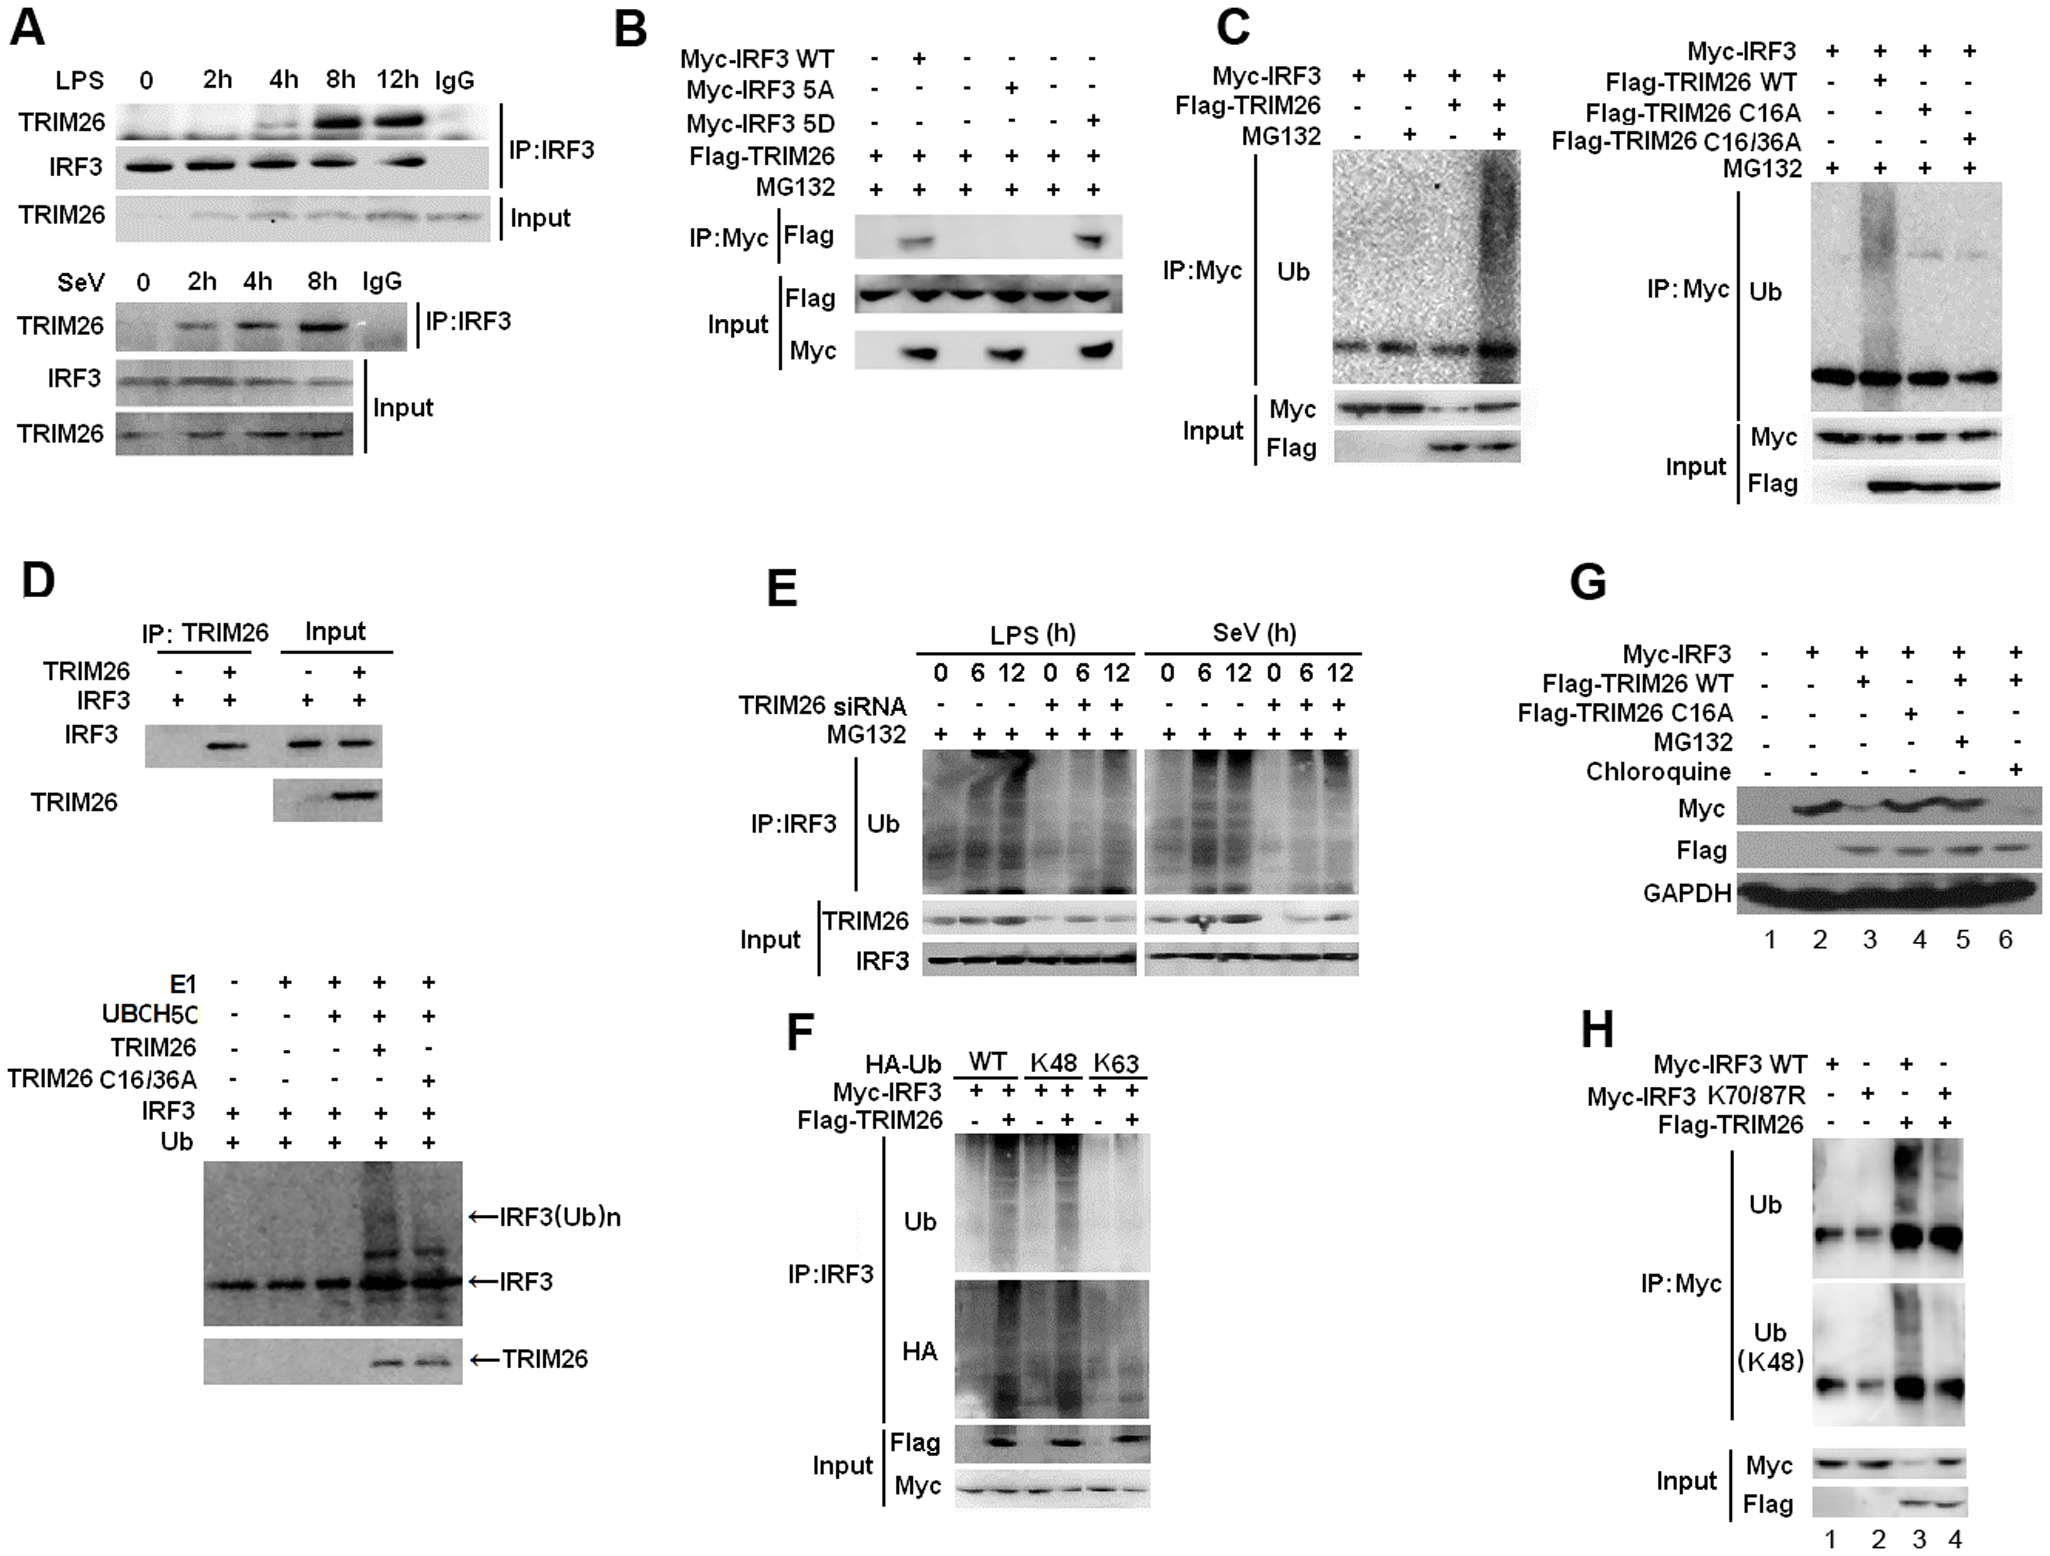 TRIM26 promotes IRF3 ubiquitination and proteasomal degradation.